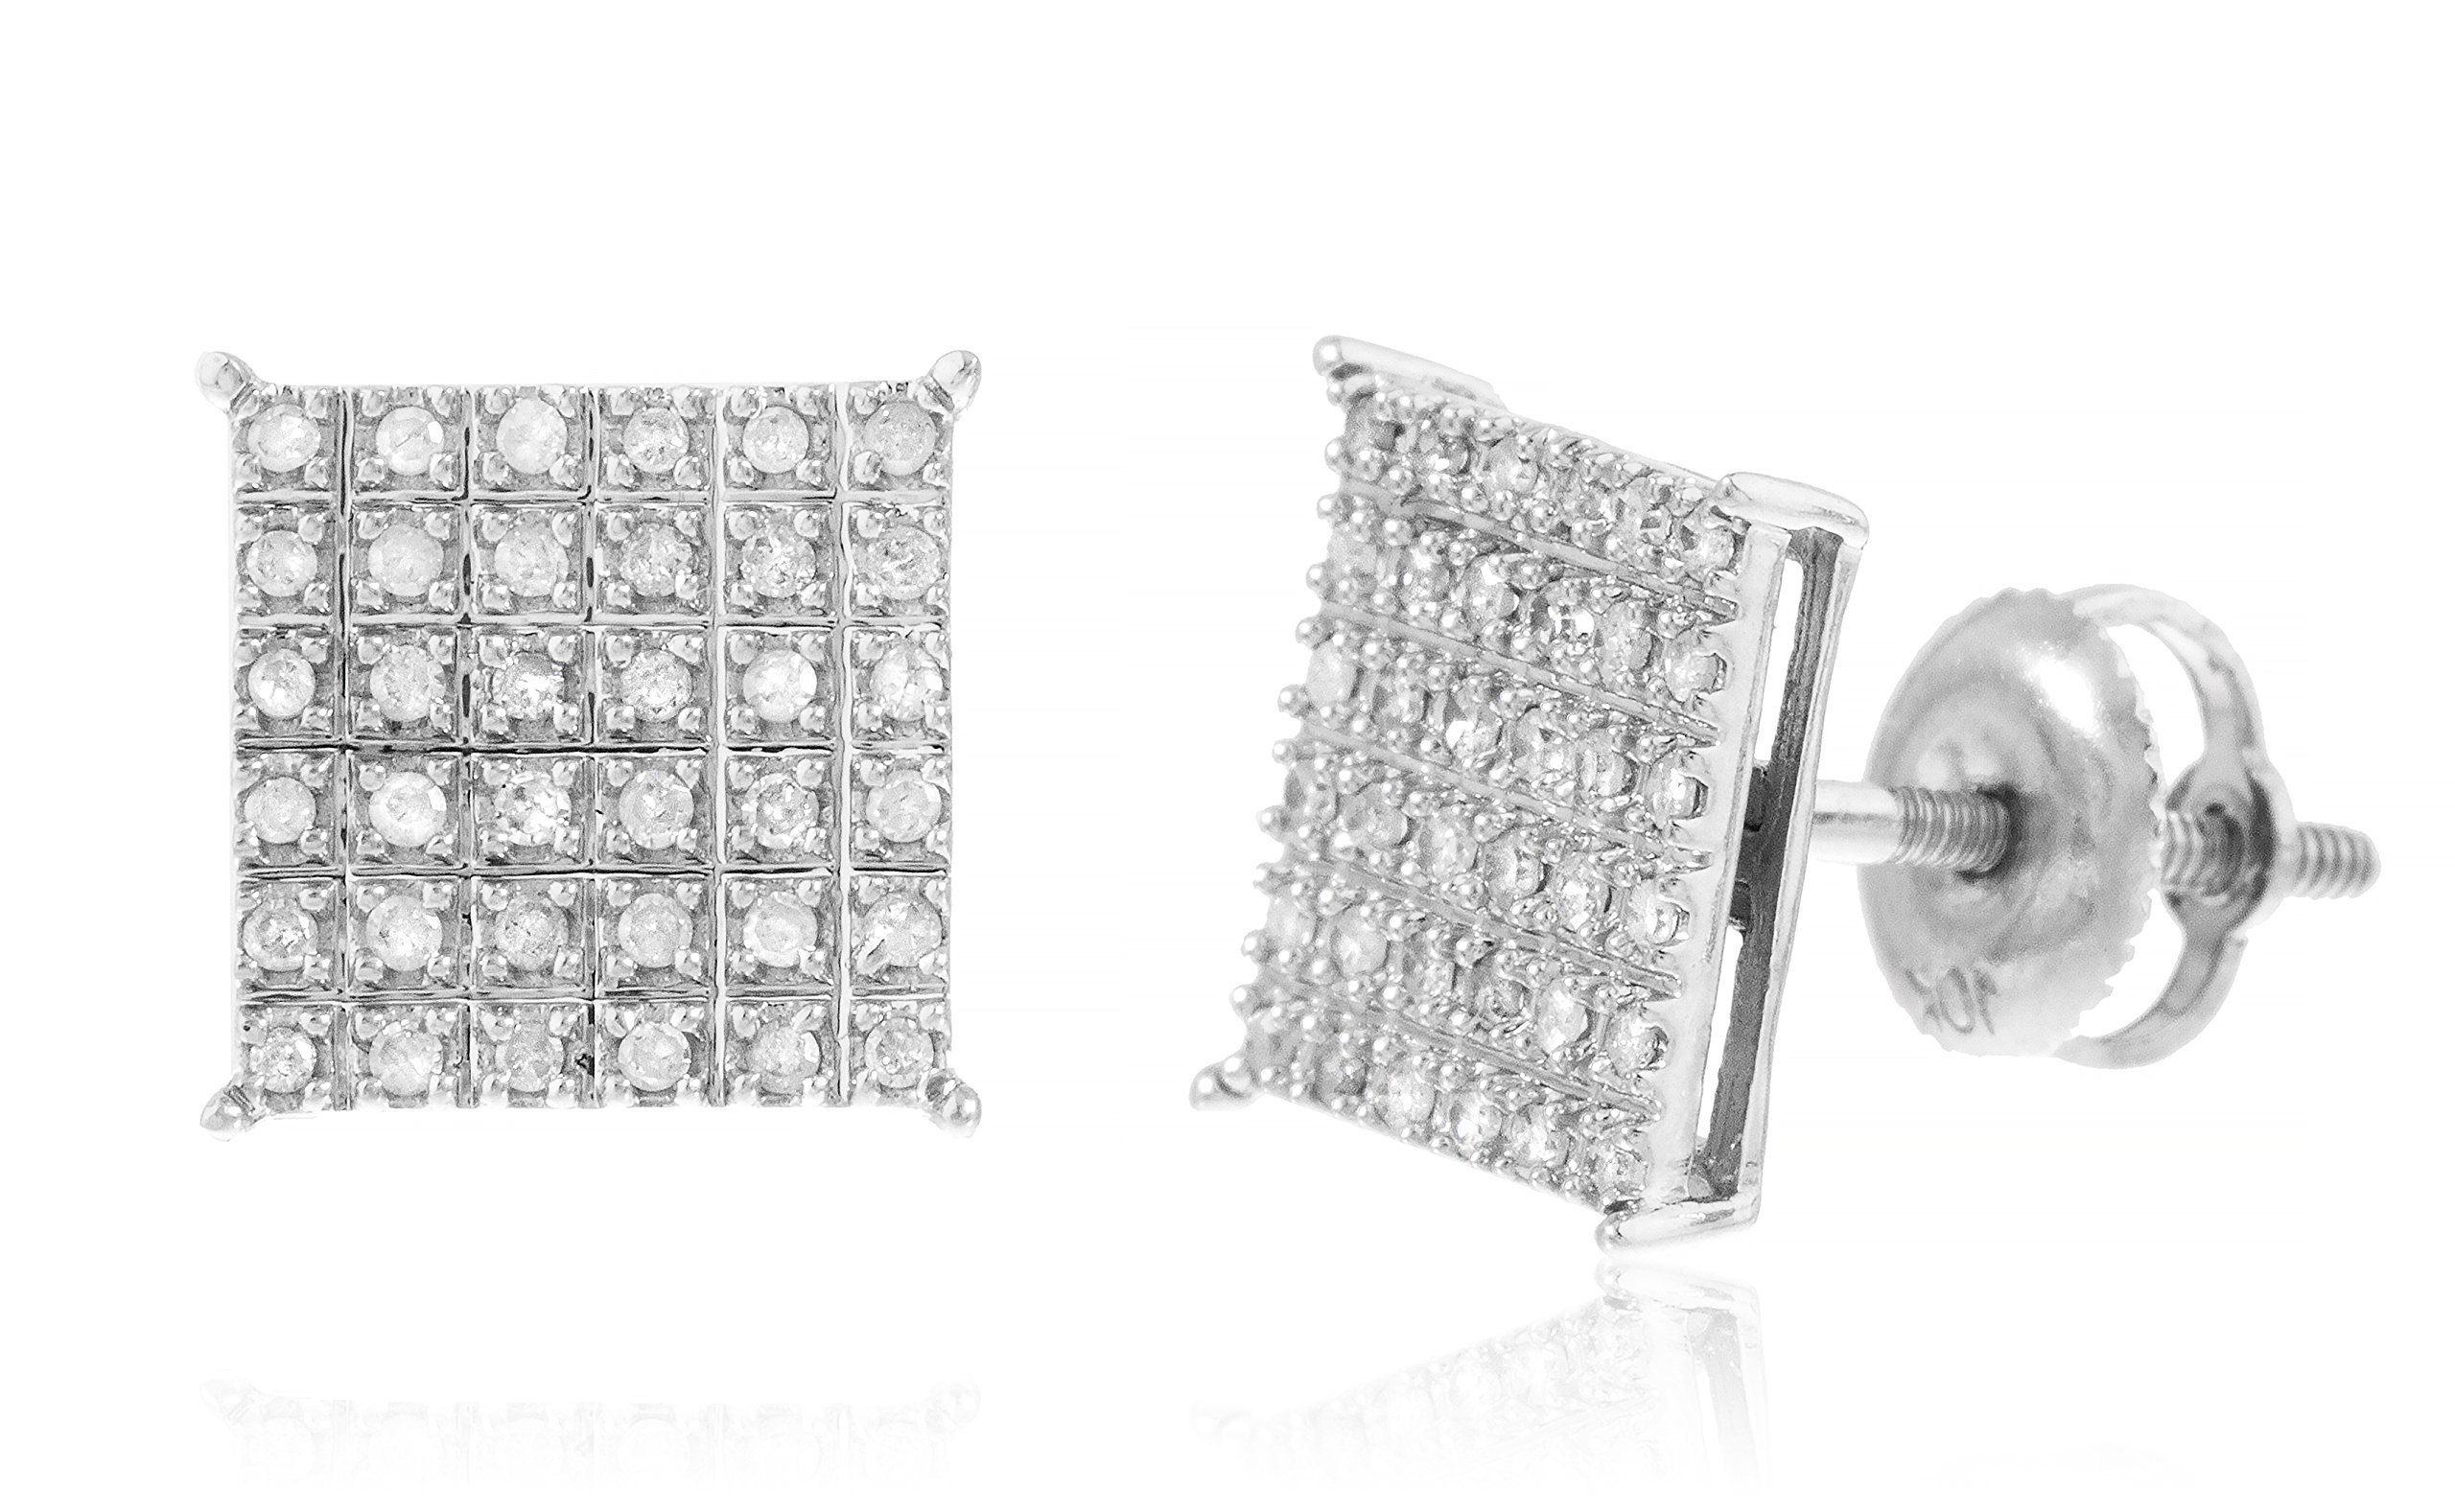 10K Gold .25 Cttw Diamond Square Screw Back Stud Earrings, Yellow or White Available (V-87) (white-gold)